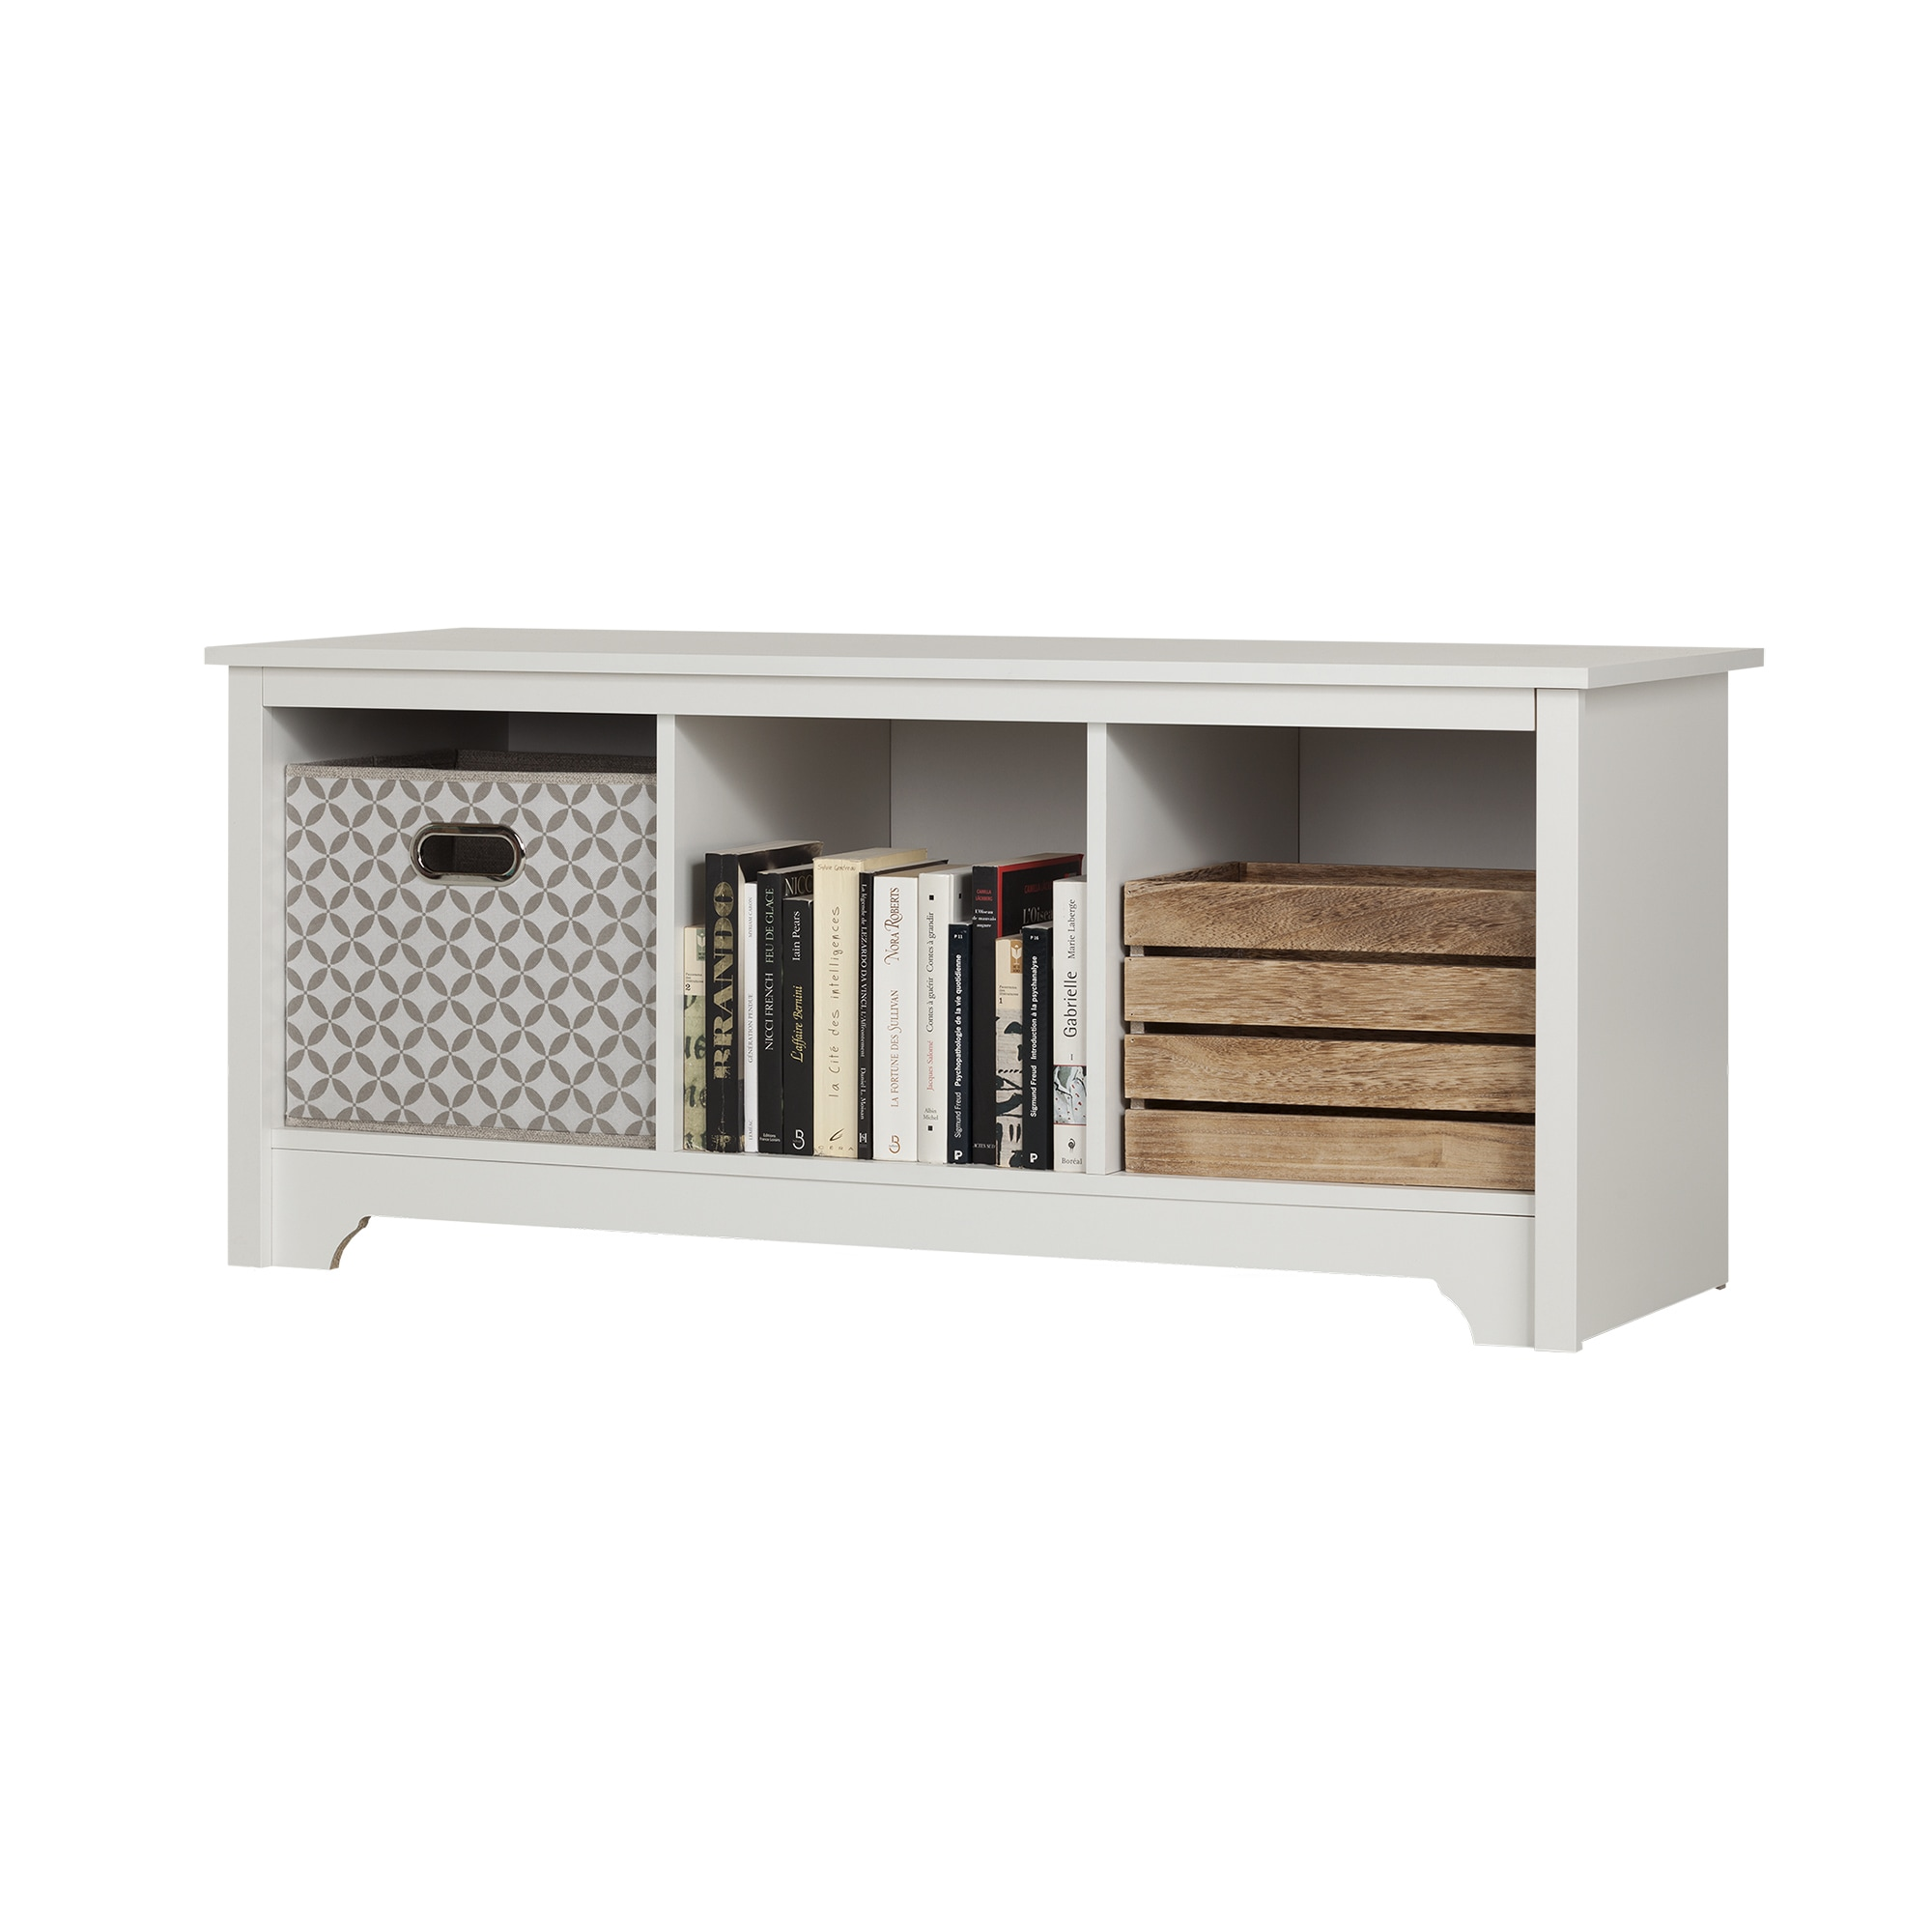 South Shore Vito Cubby Storage Bench - Free Shipping Today - Overstock.com  - 18529527